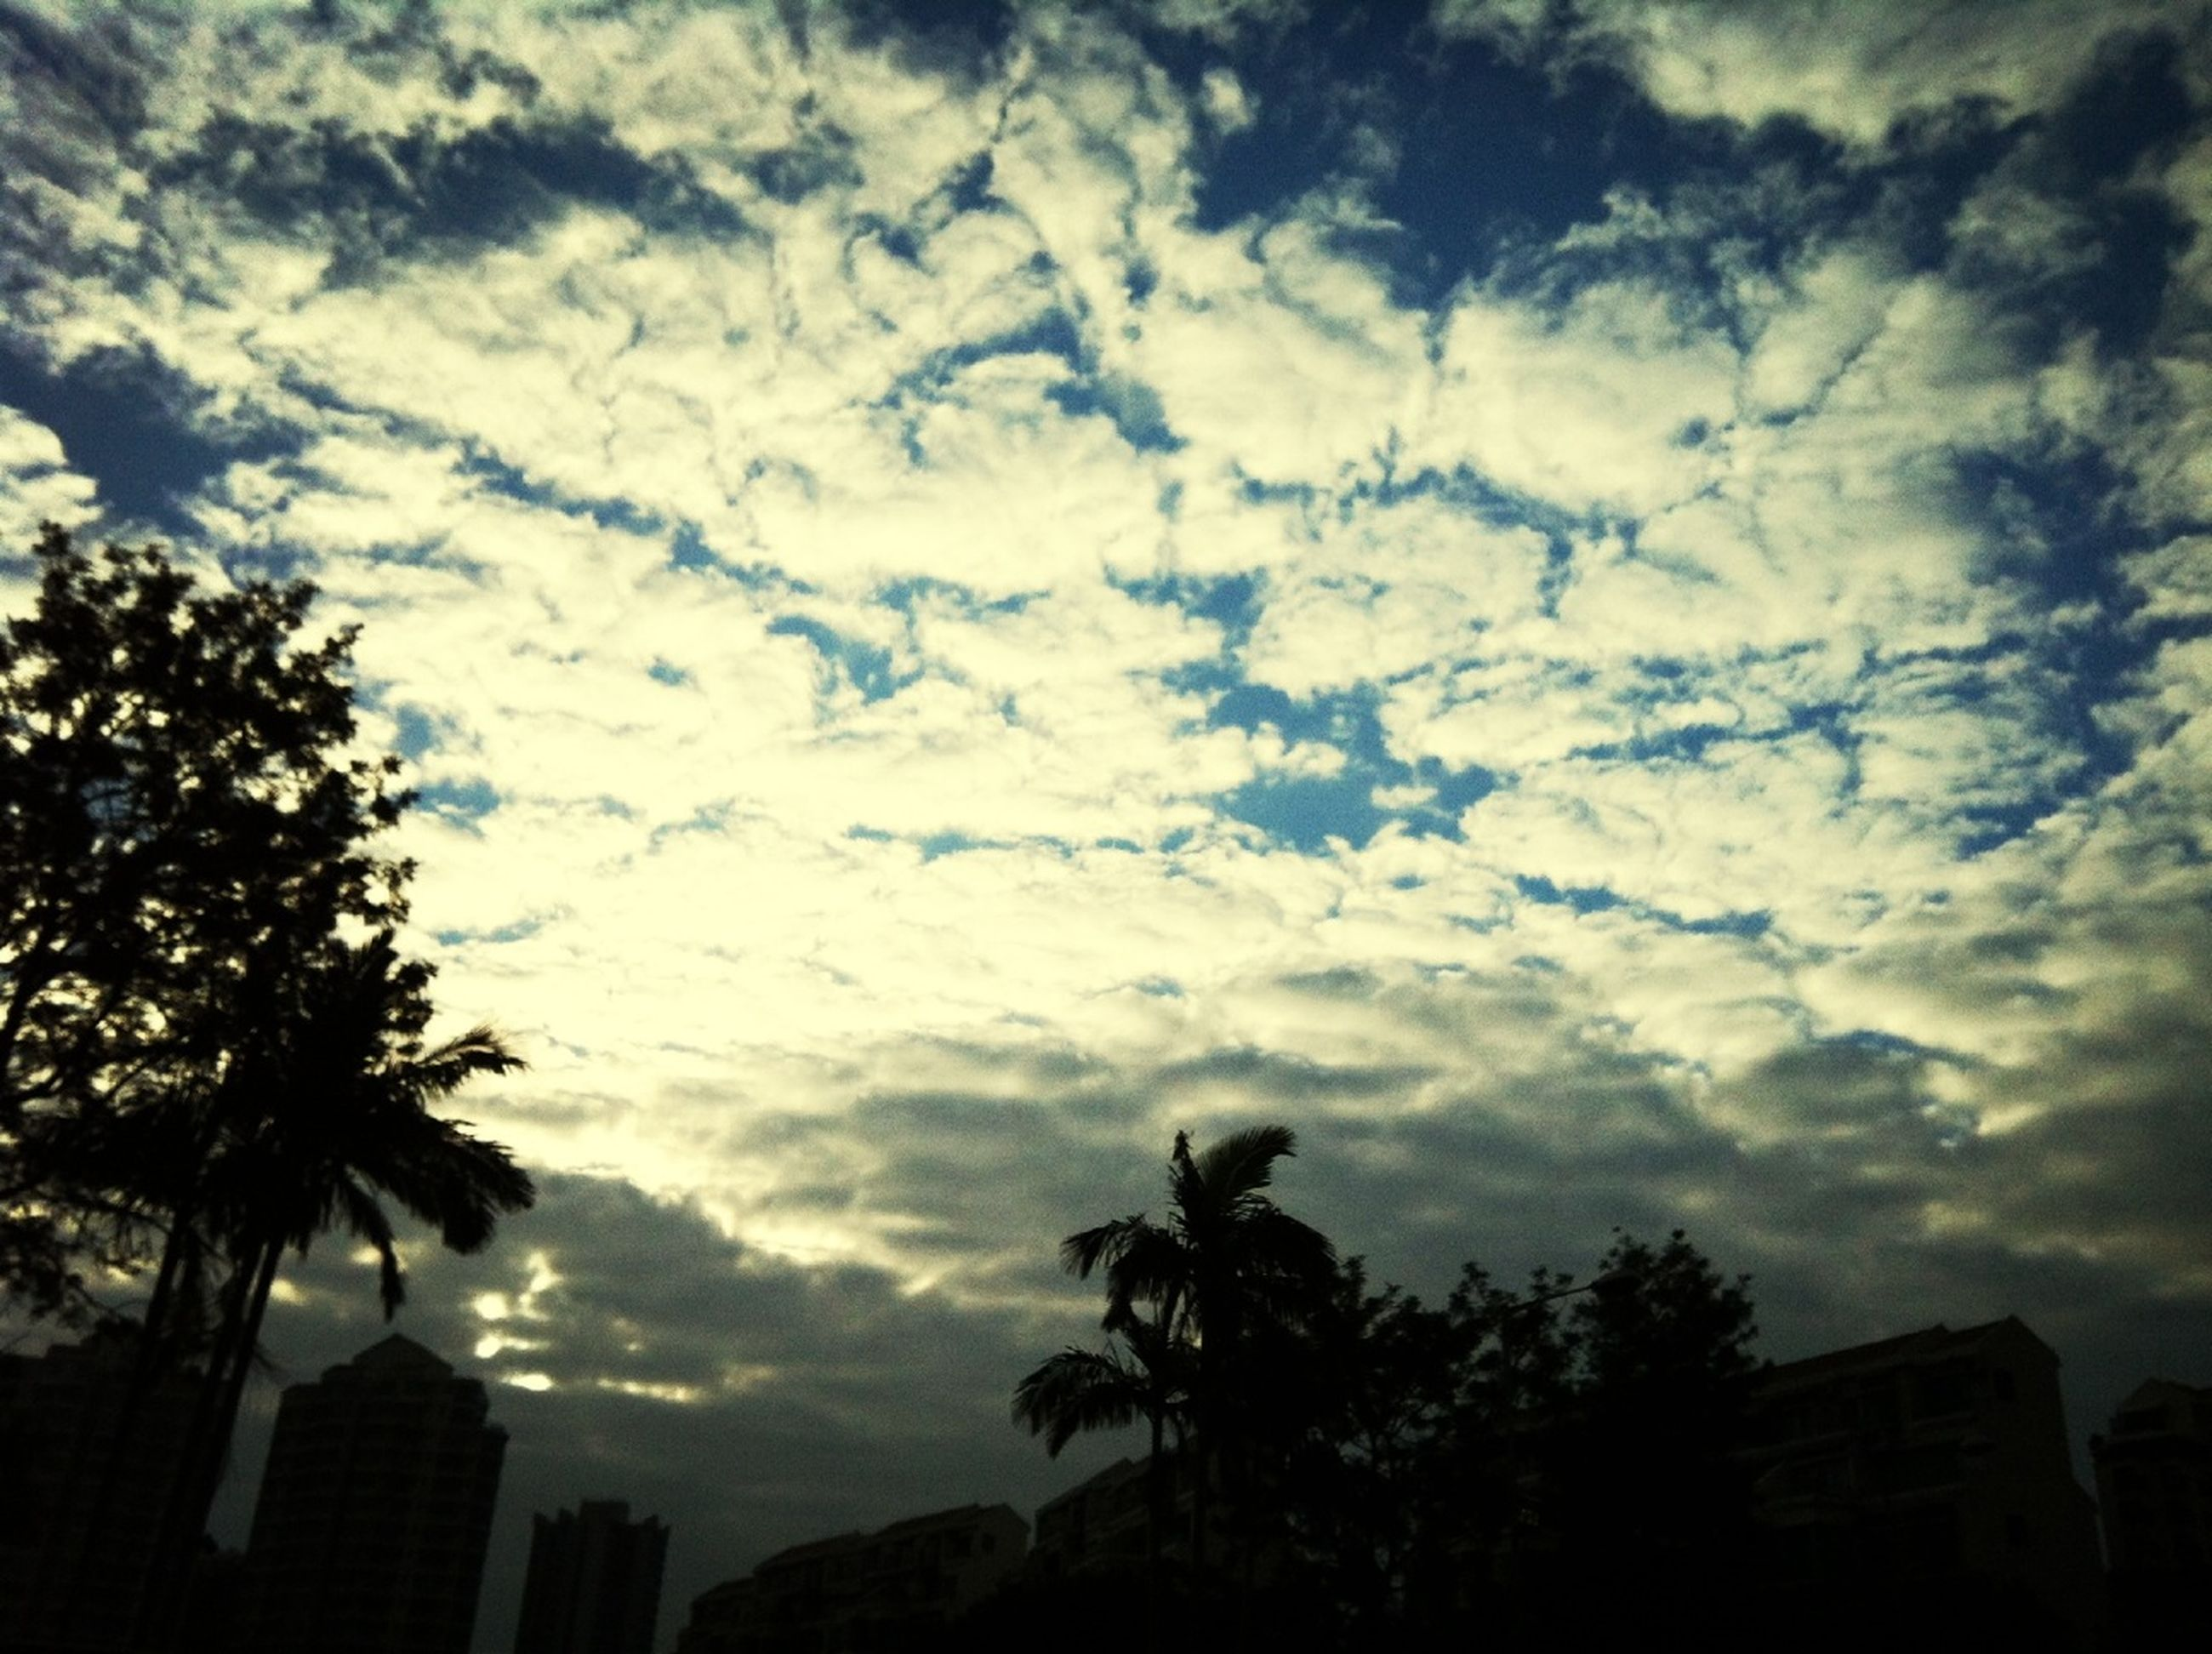 sky, cloud - sky, cloudy, low angle view, tree, silhouette, building exterior, built structure, architecture, cloud, weather, overcast, nature, dusk, beauty in nature, scenics, palm tree, sunset, storm cloud, outdoors